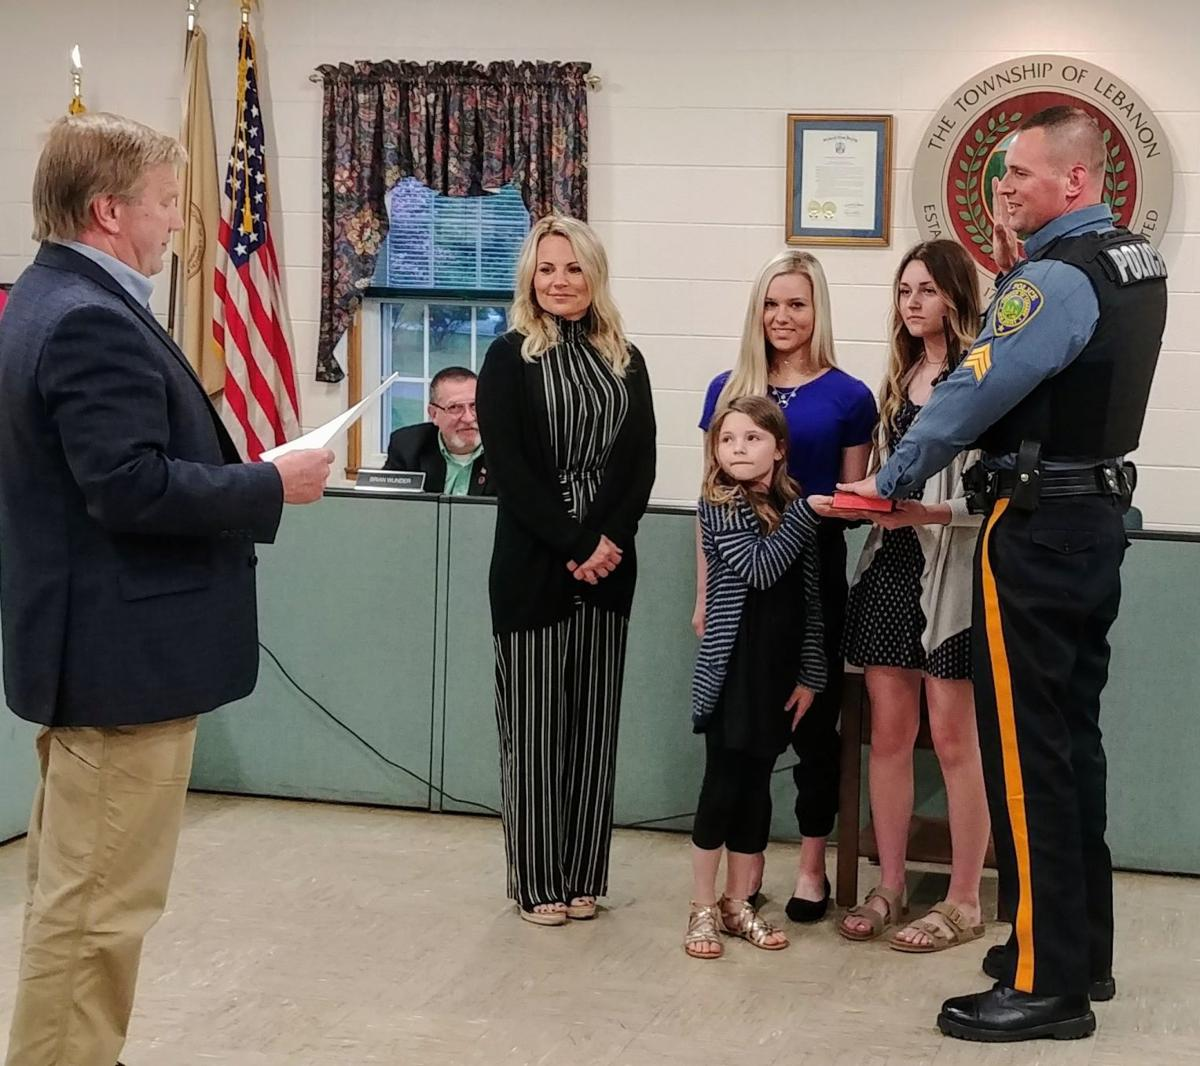 New police sergeant takes his stripes